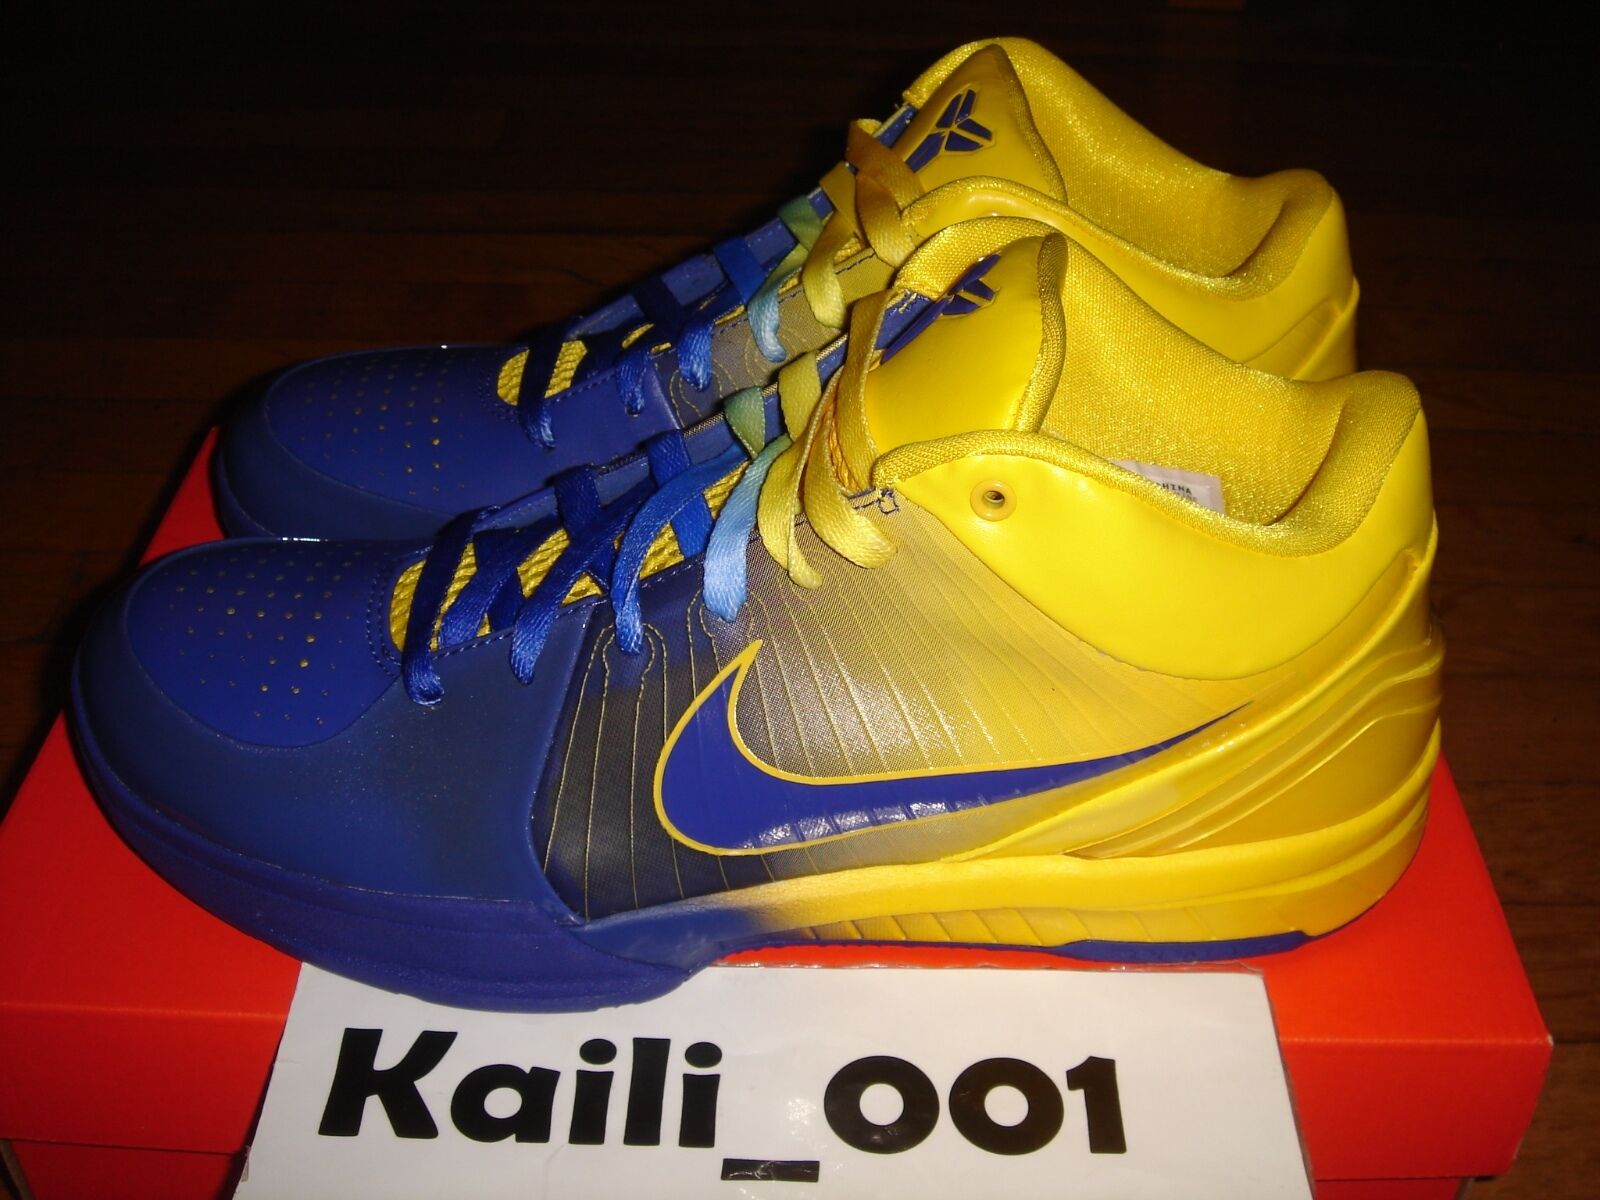 competitive price 89601 6f108 ... Nike Zoom Kobe IV IV IV 4 RINGS Size 10.5 4 RINGS 344335-400 MLK ...